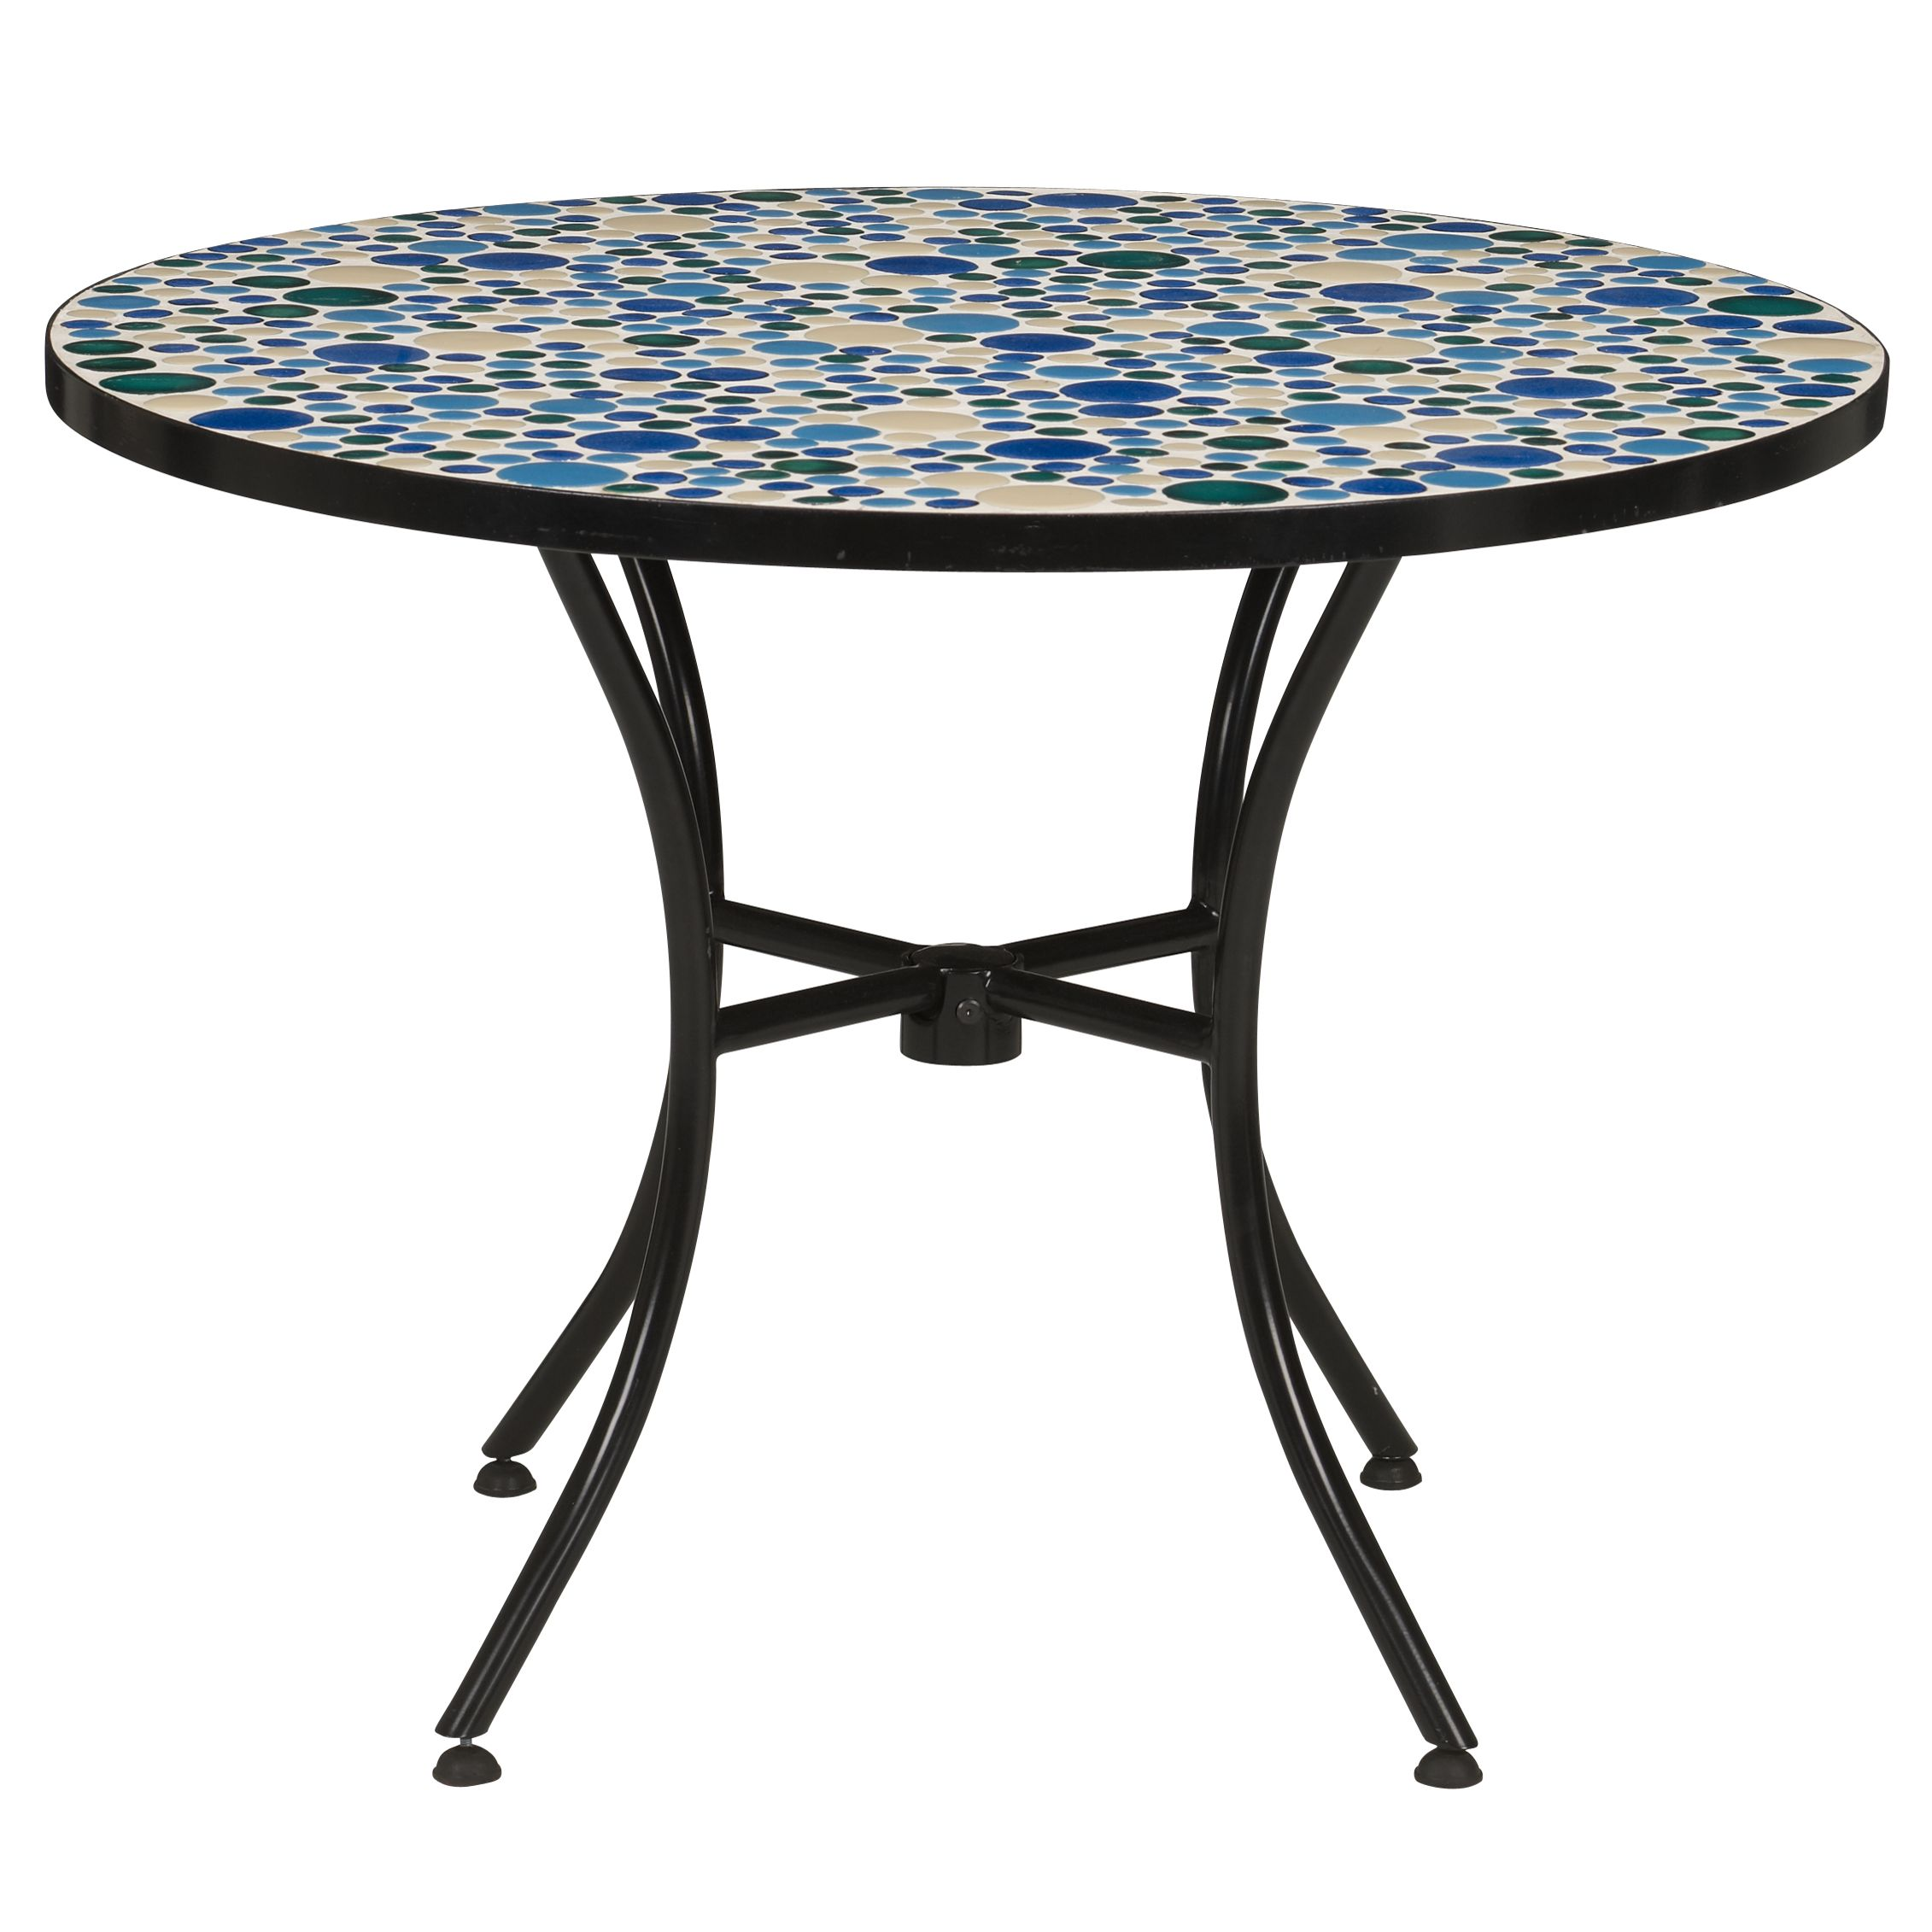 John Lewis Bubbles Outdoor Dining Table